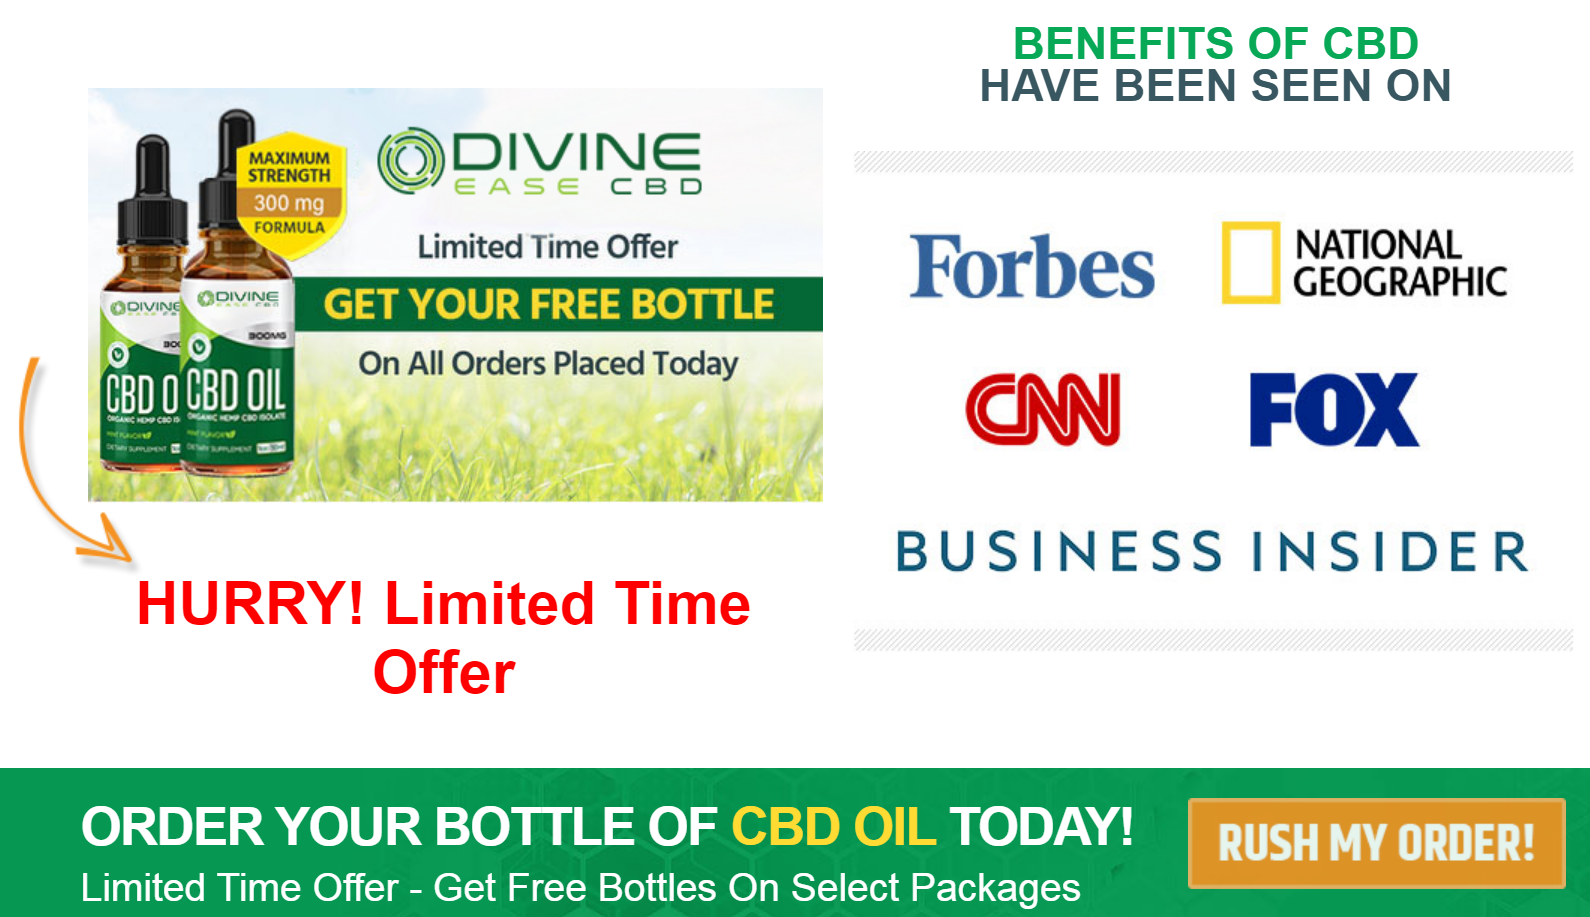 Divine Ease CBD Oil UK: Reviews, Benefits, Side Effects, Price & Scam